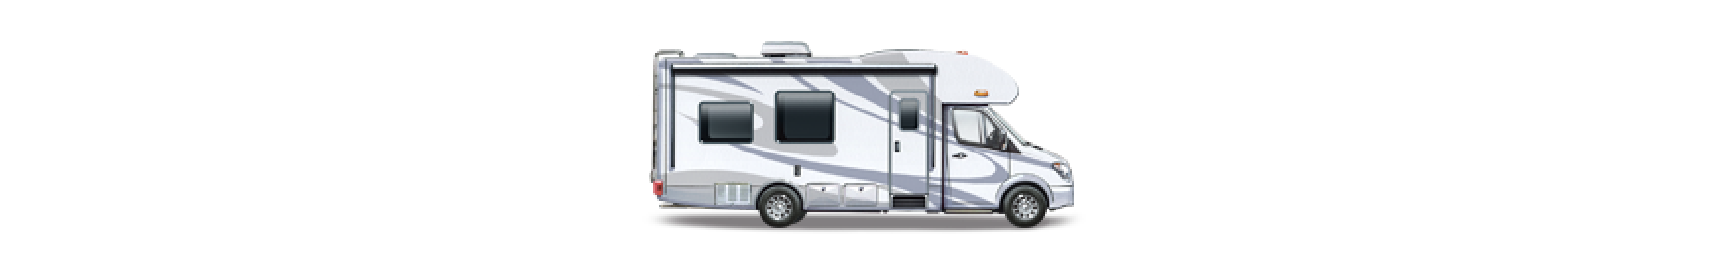 Available RV Rental Types